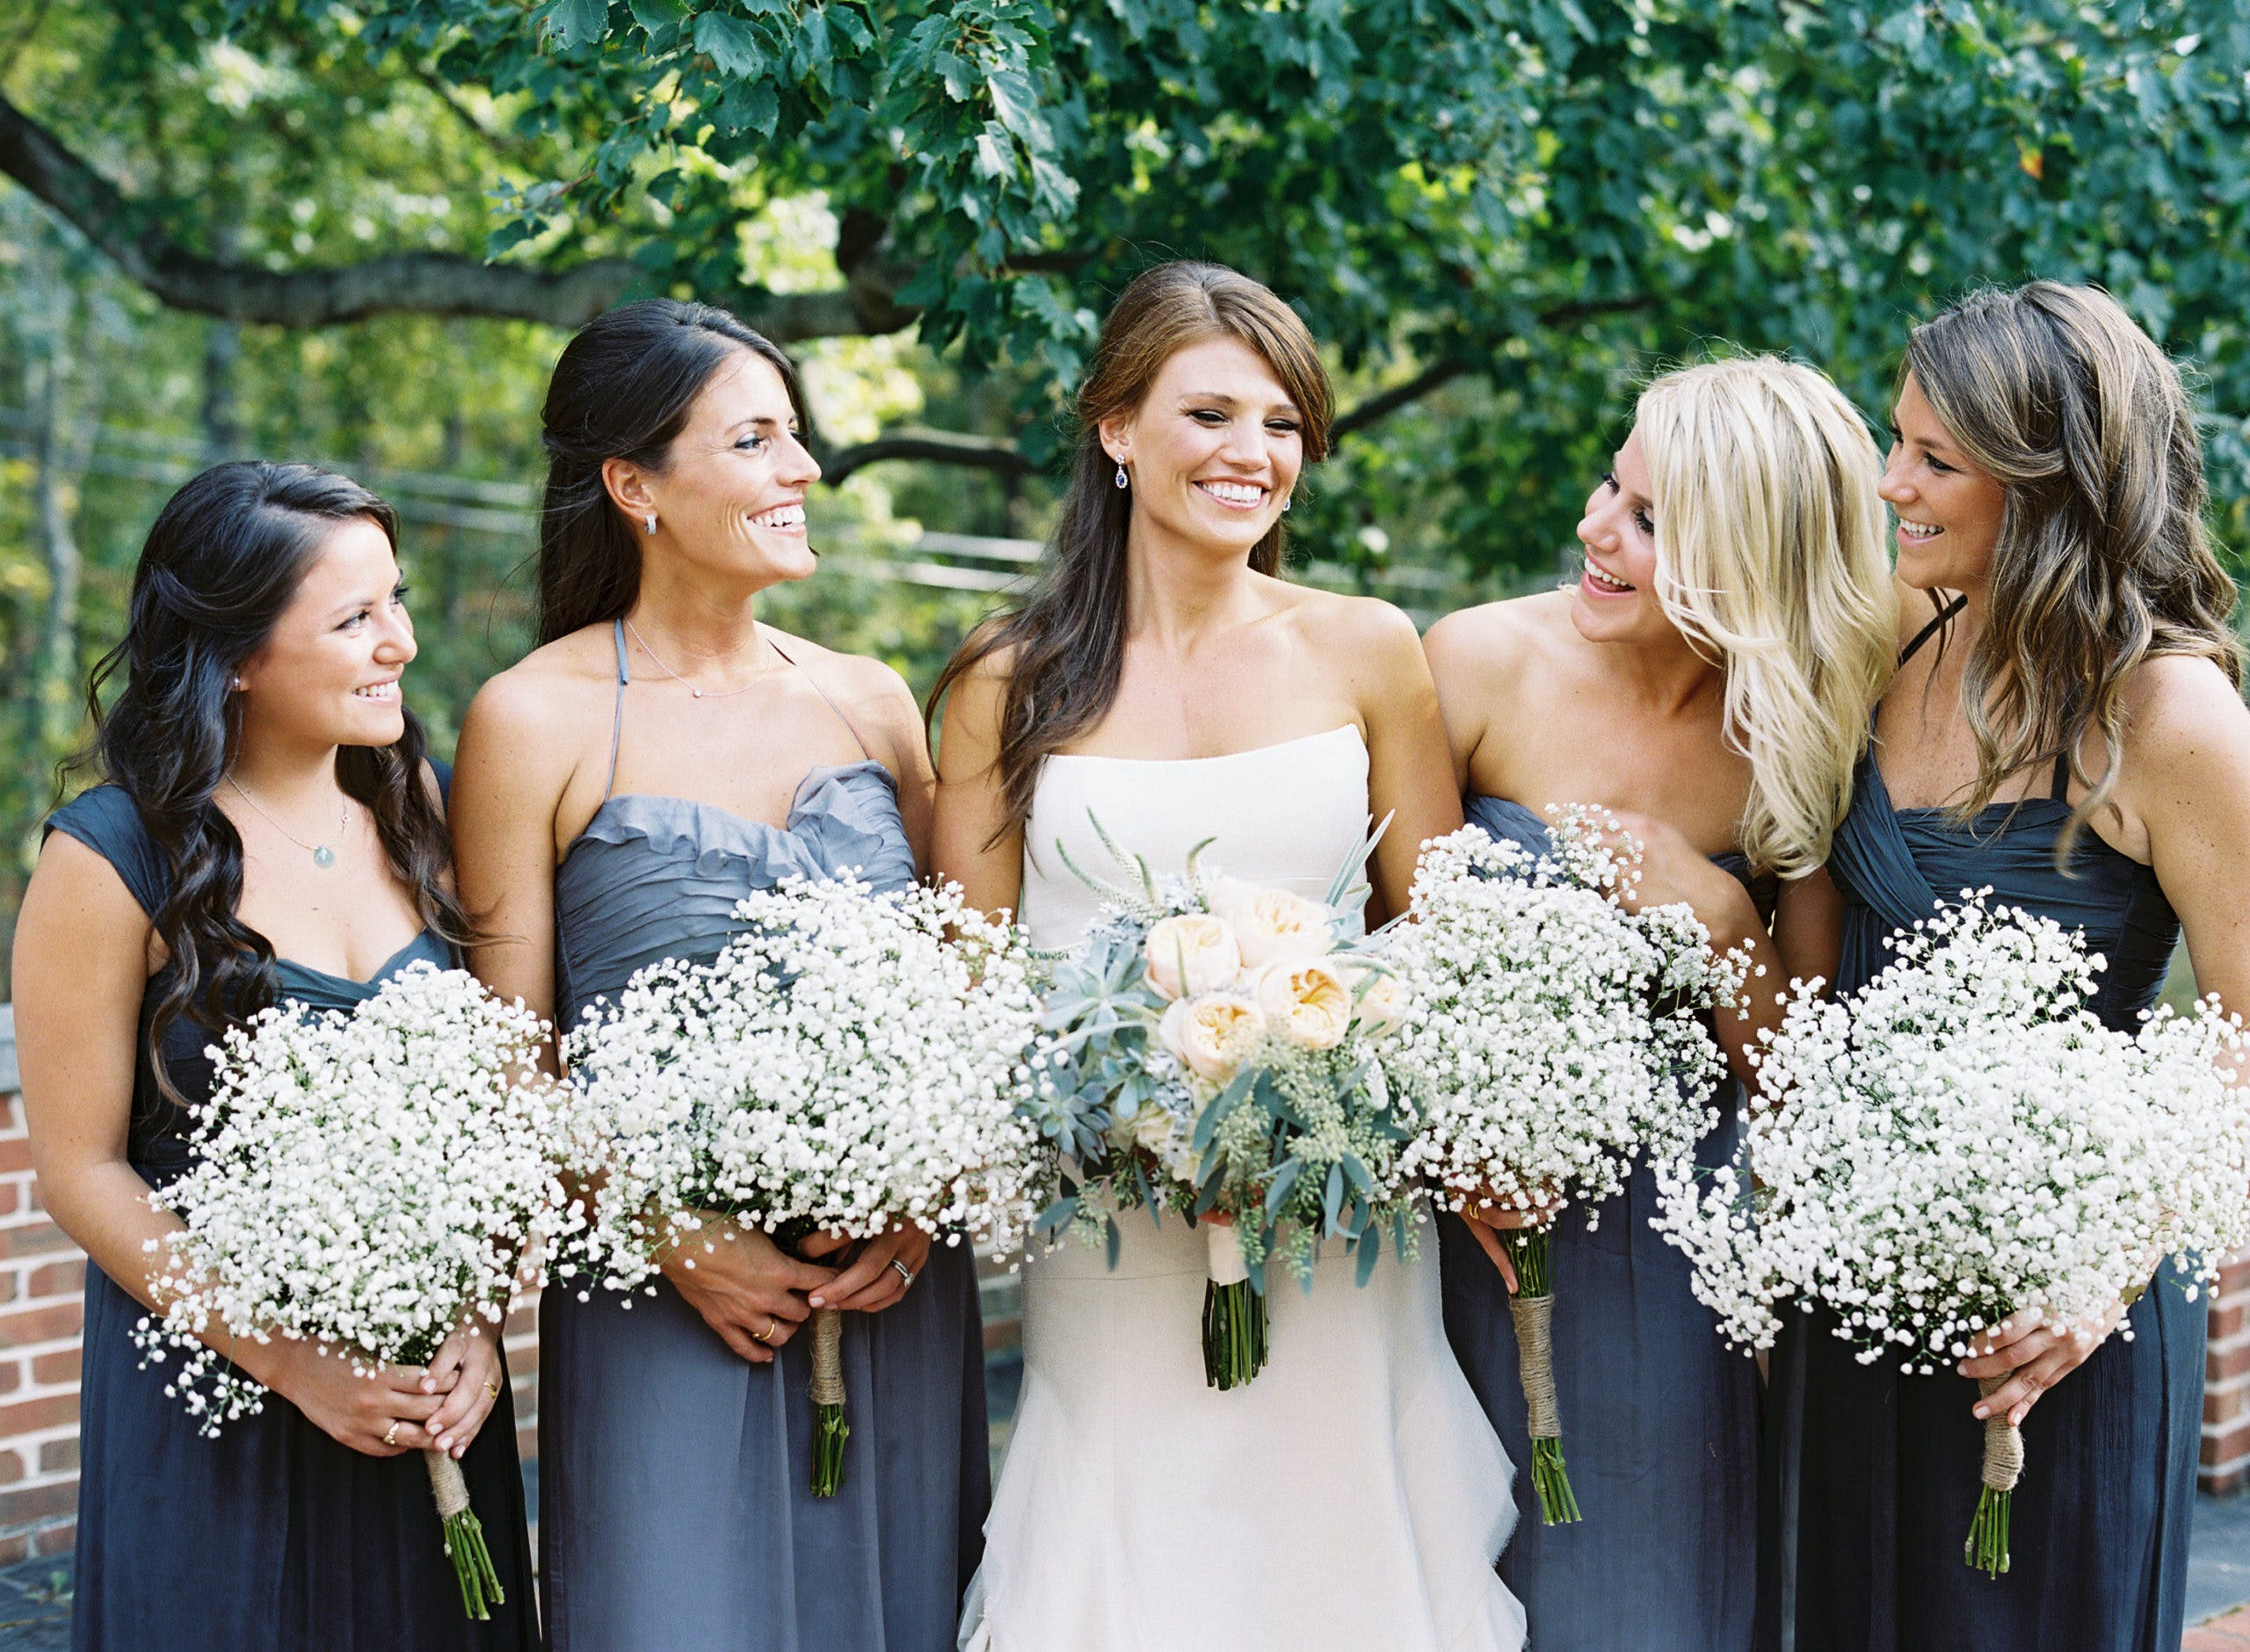 Bride is flanked by two bridesmaids on each side holding baby's breath wedding bouquets   PartySlate